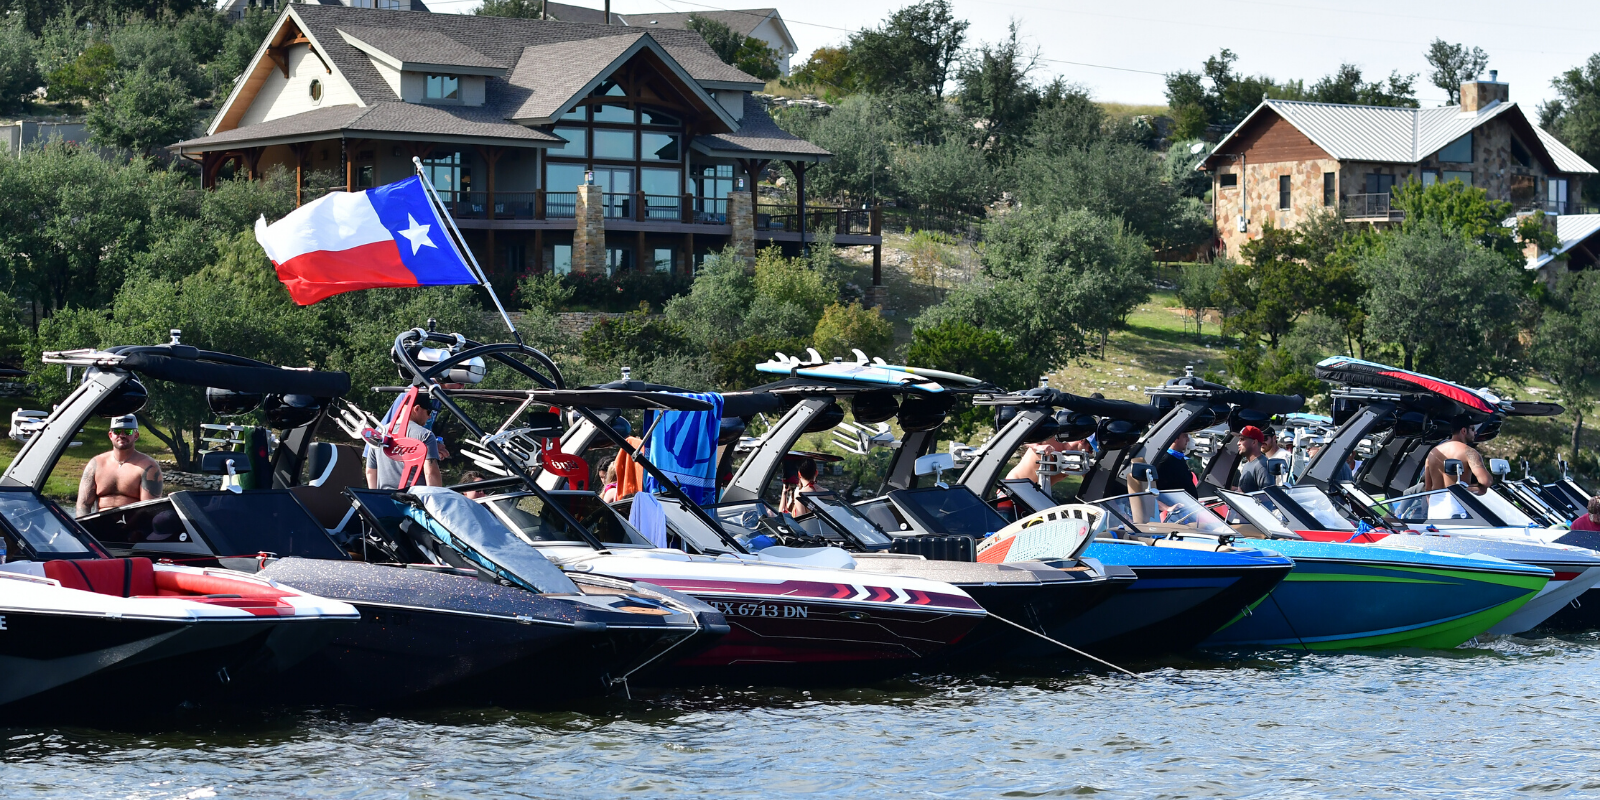 line of wake boats on the lake